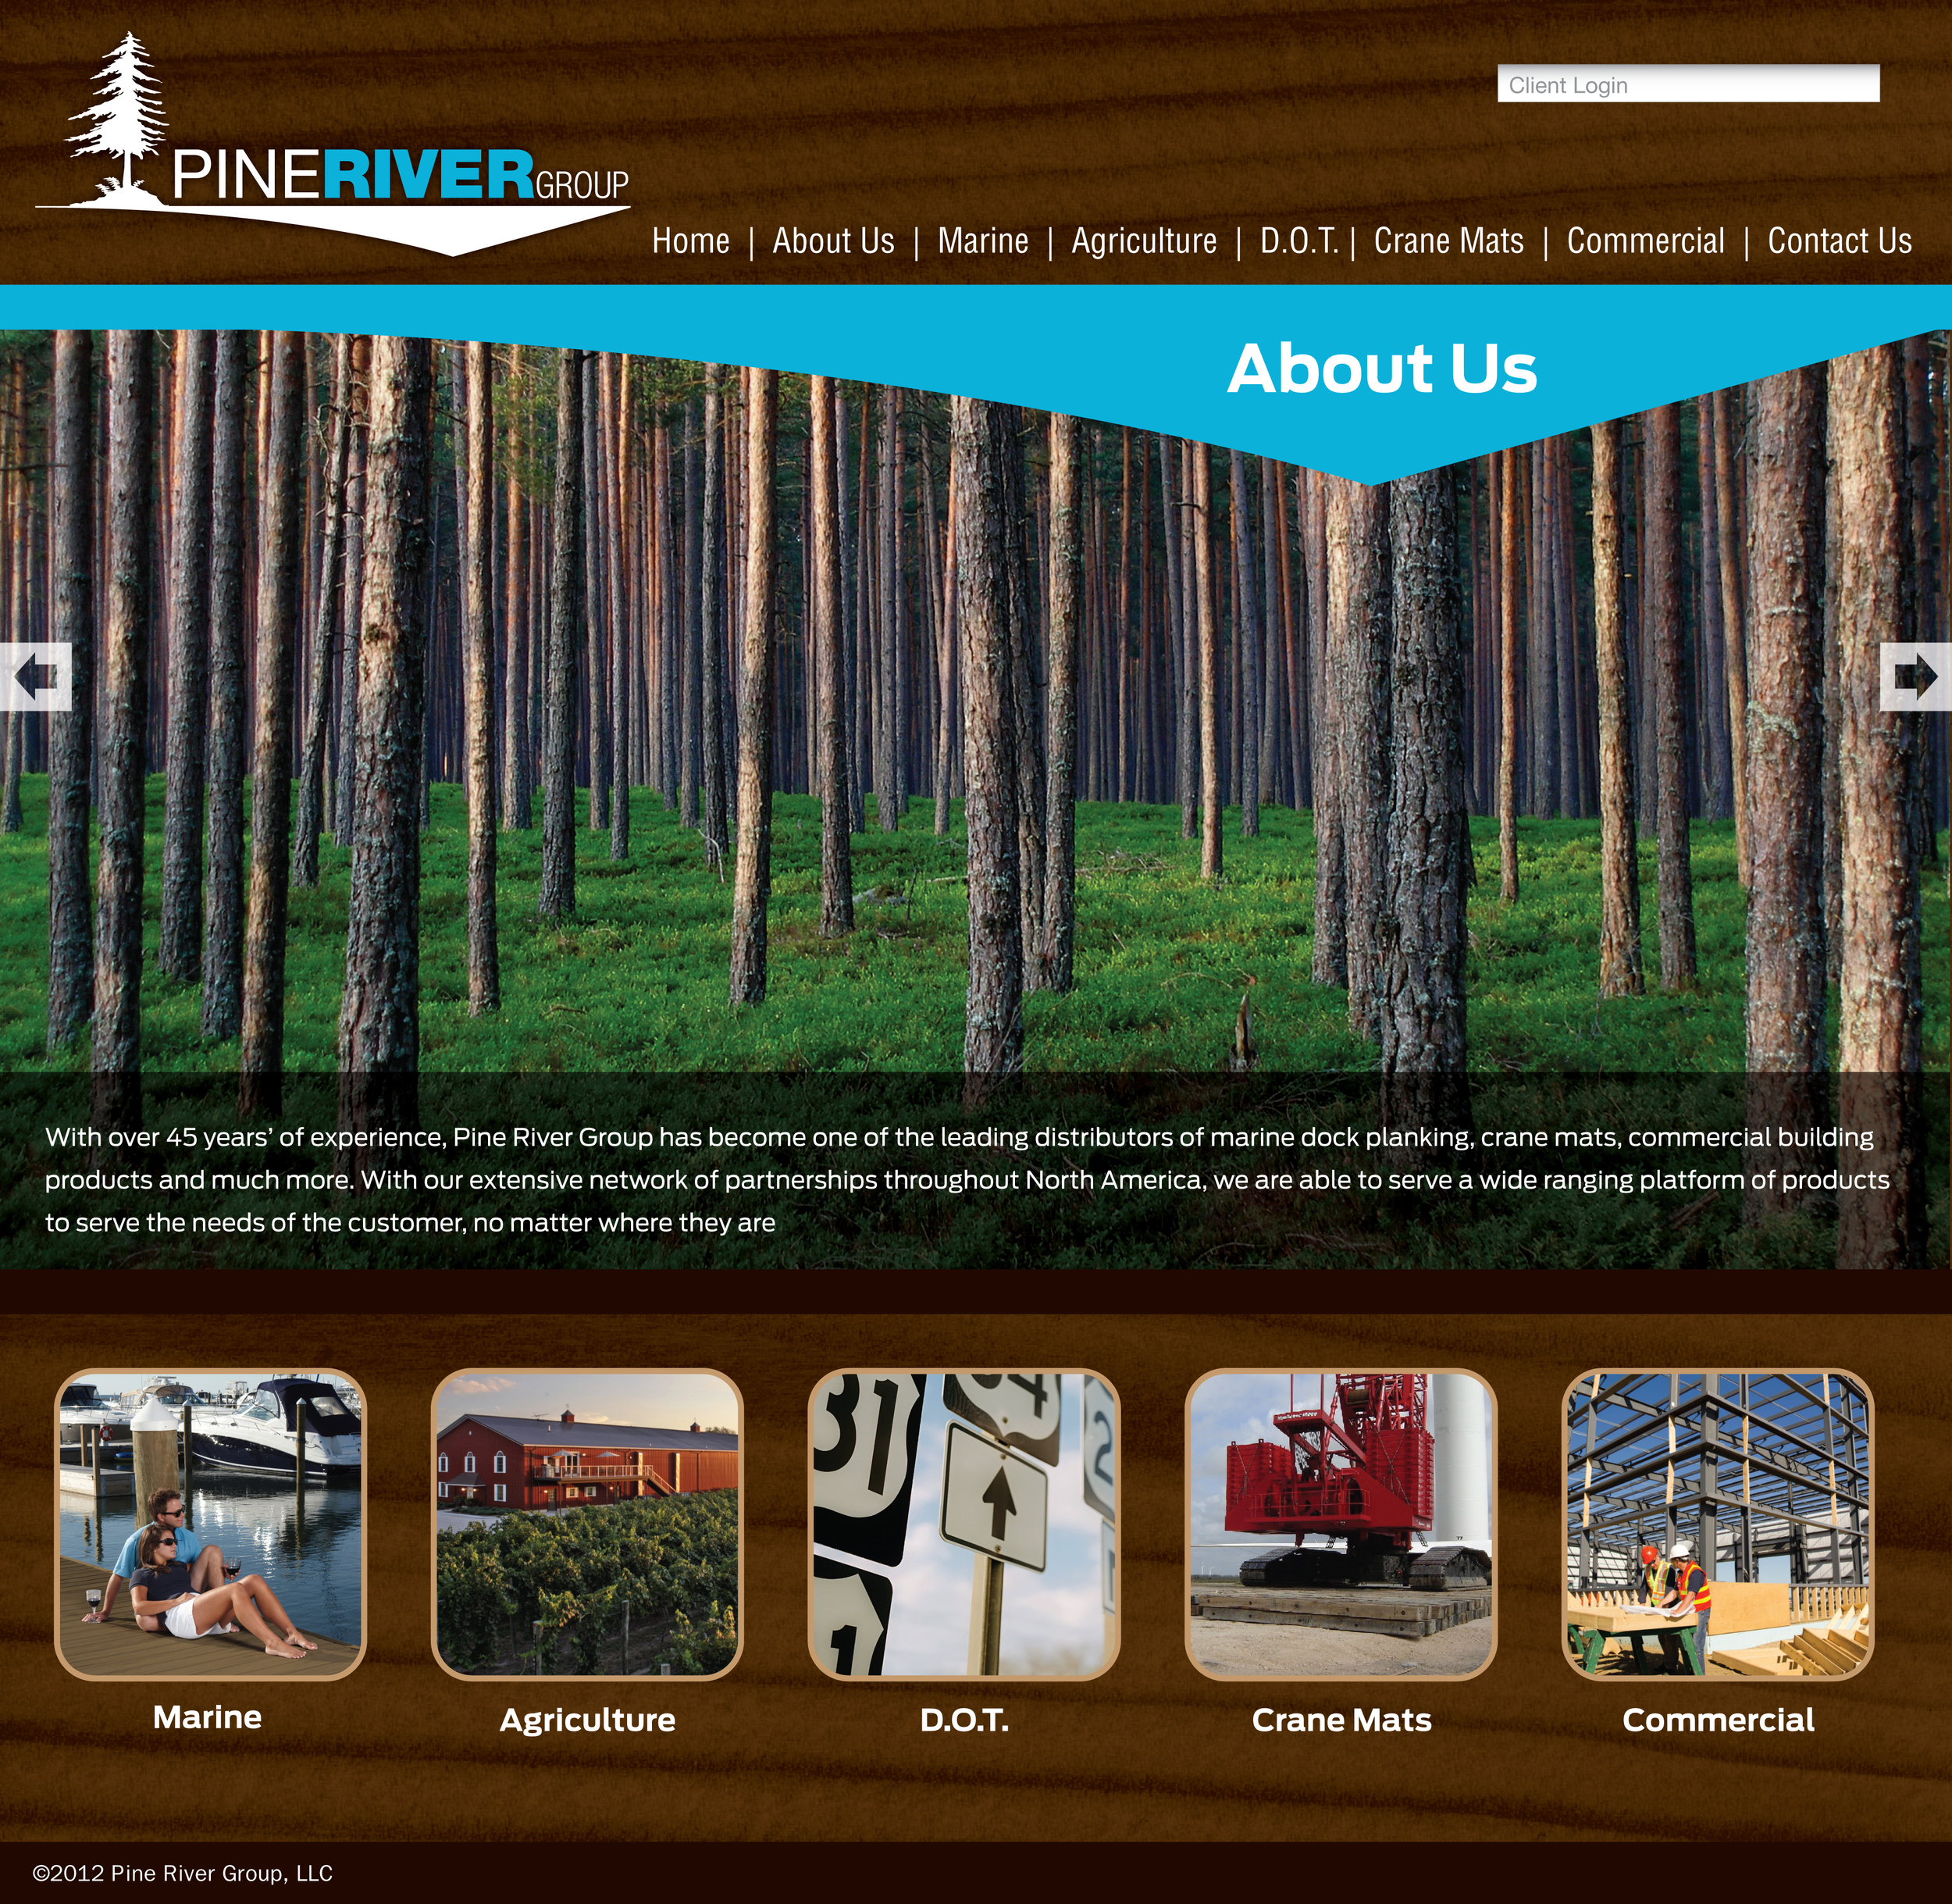 Pine River Group